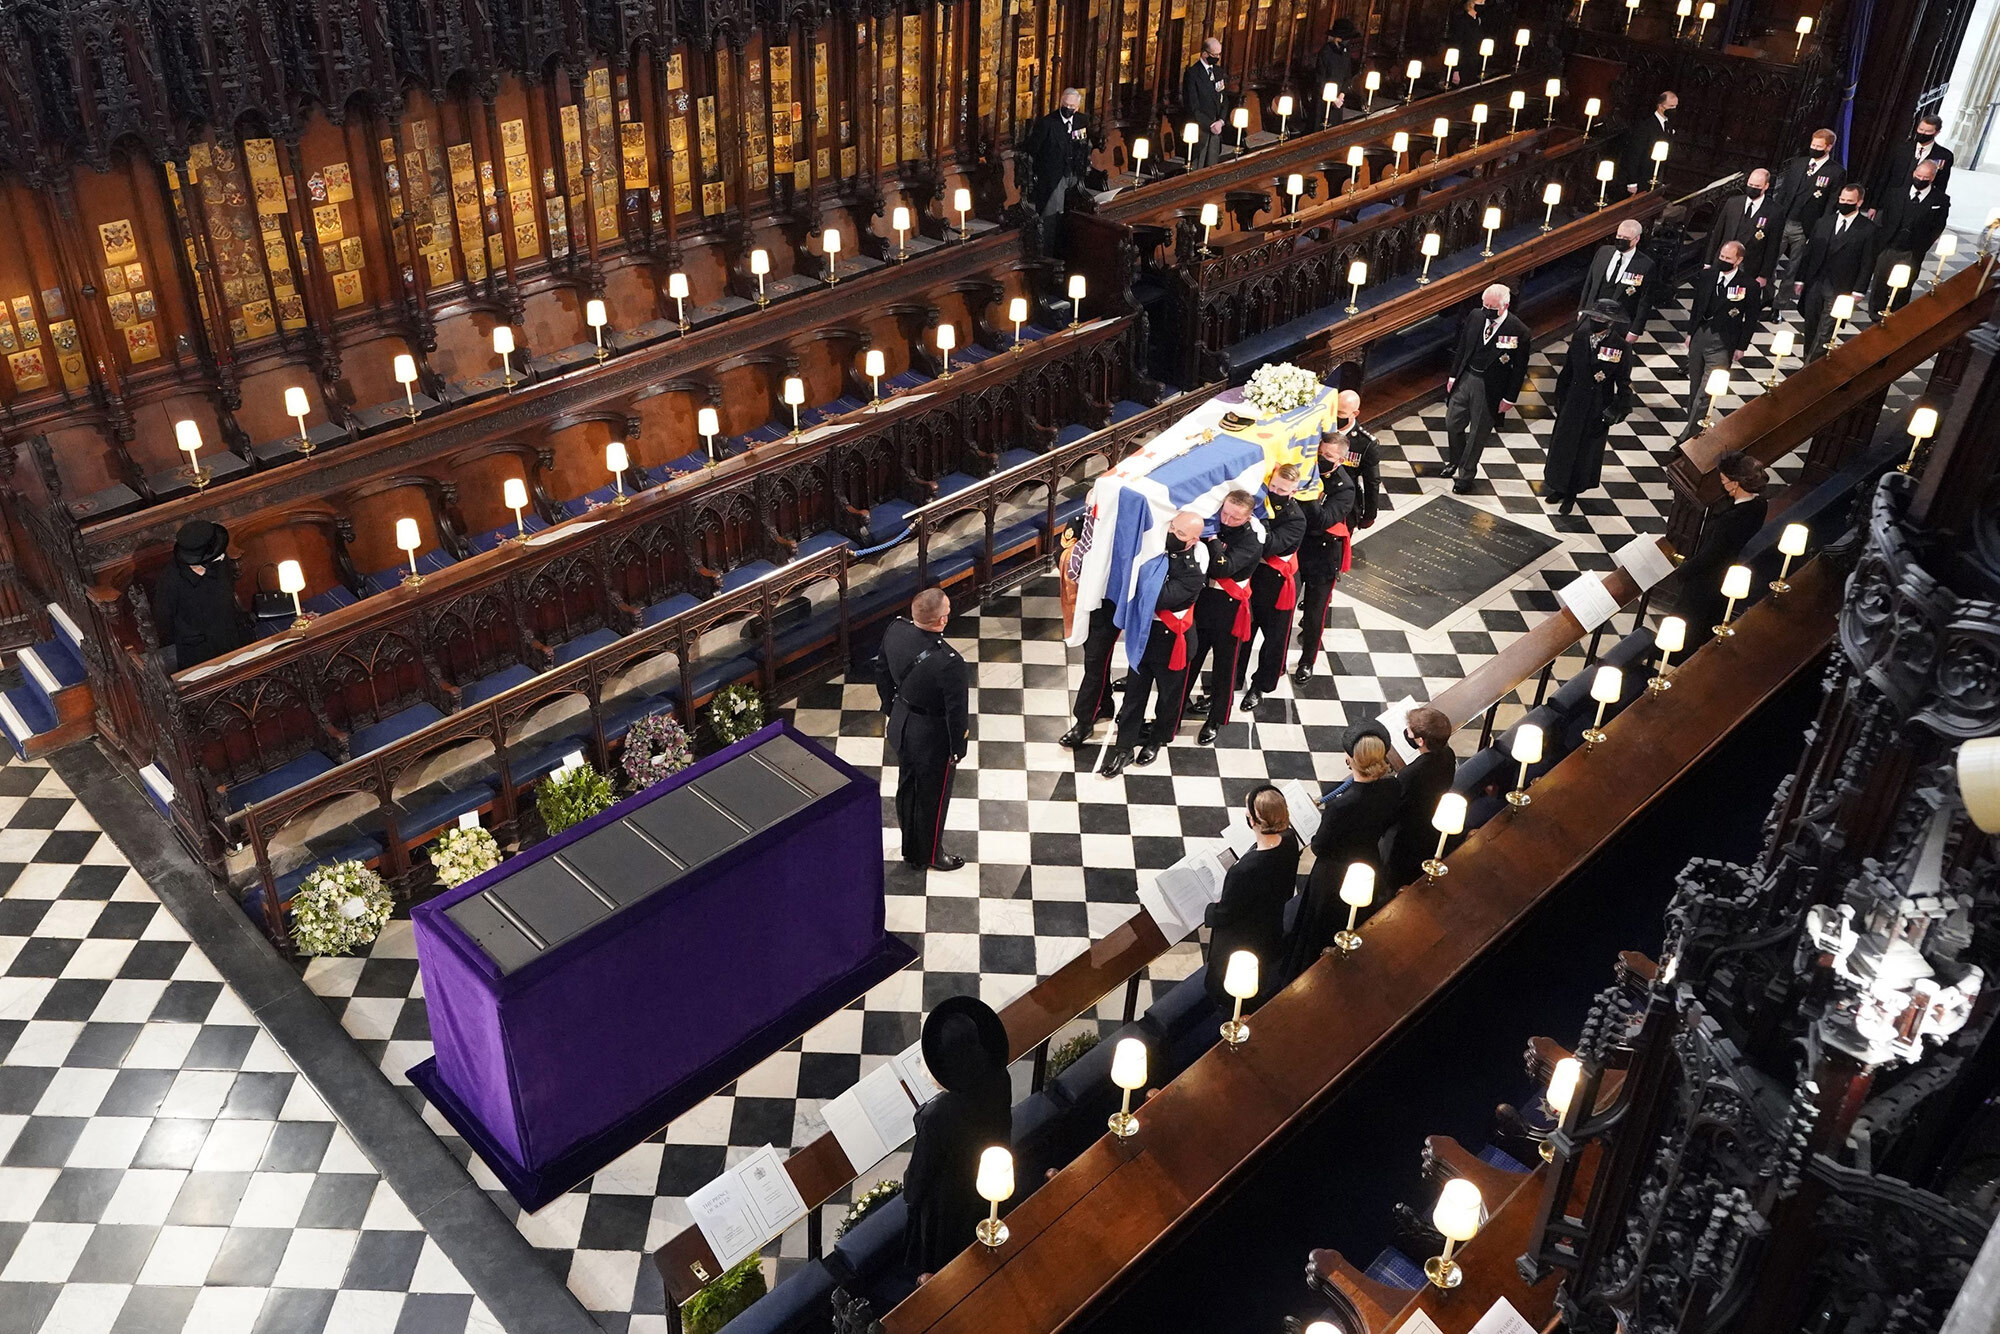 Queen Elizabeth II, left, watches as pallbearers carry Prince Philip's coffin during his funeral inside St. George's Chapel in Windsor Castle, on April 17.